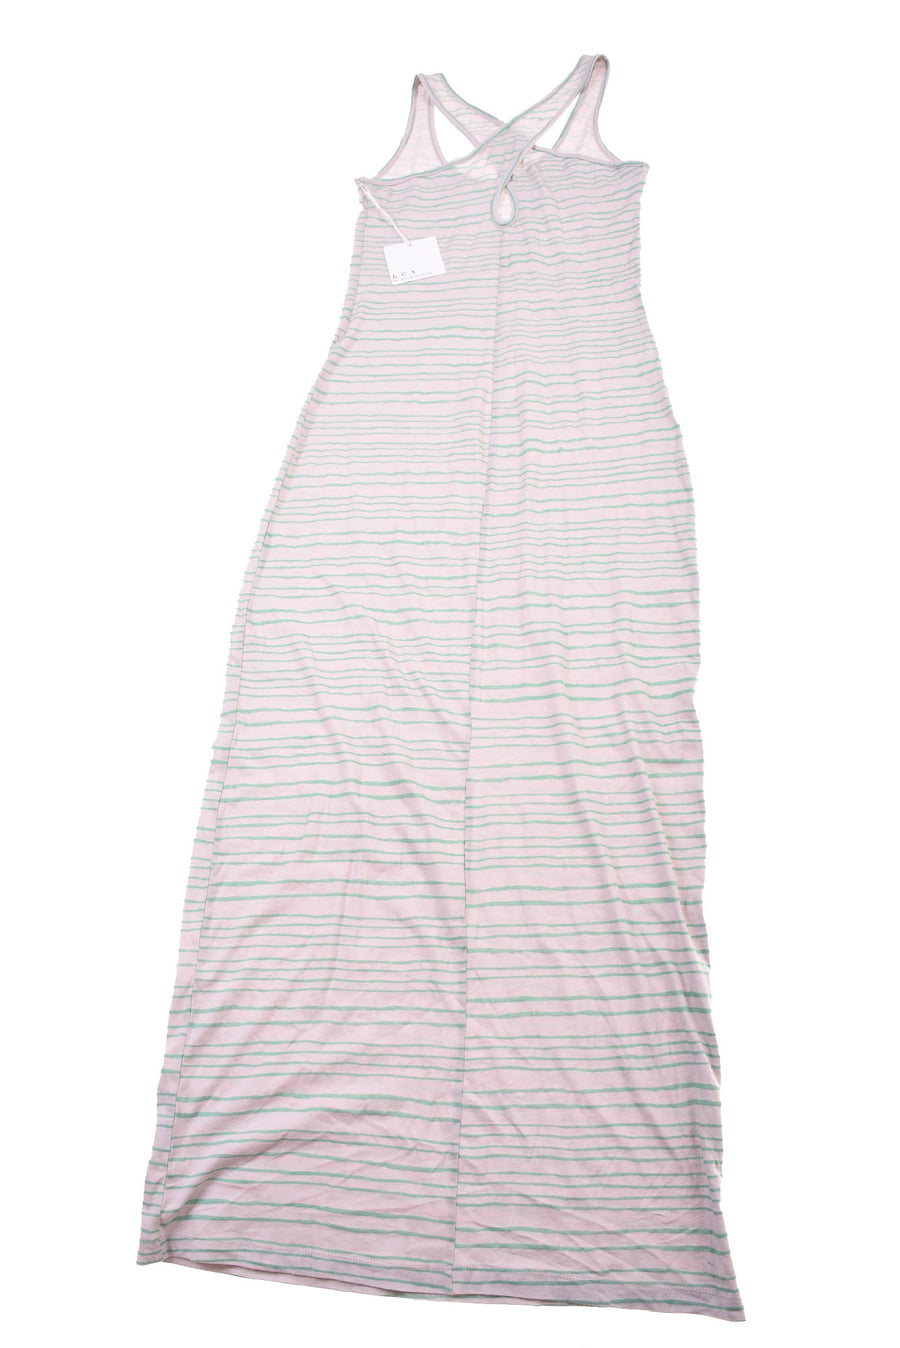 NEW Lucca Couture Women's Dress Small Gray & Green